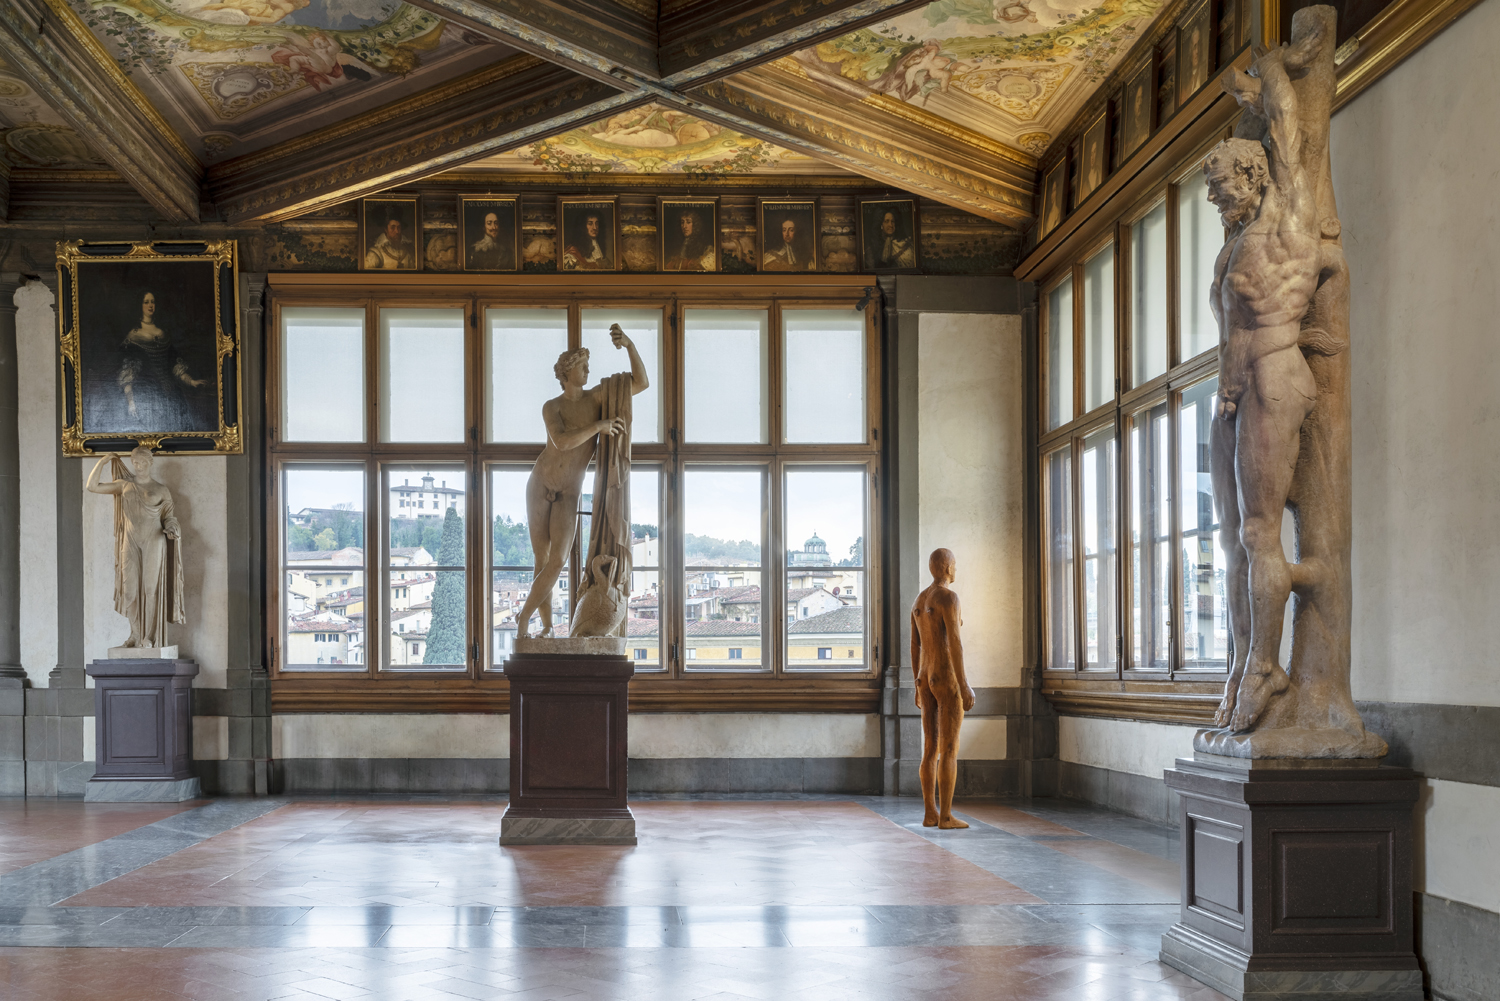 2019 Exhibitions in Florence and Tuscany: a Year of Art - ArtTravArtTrav